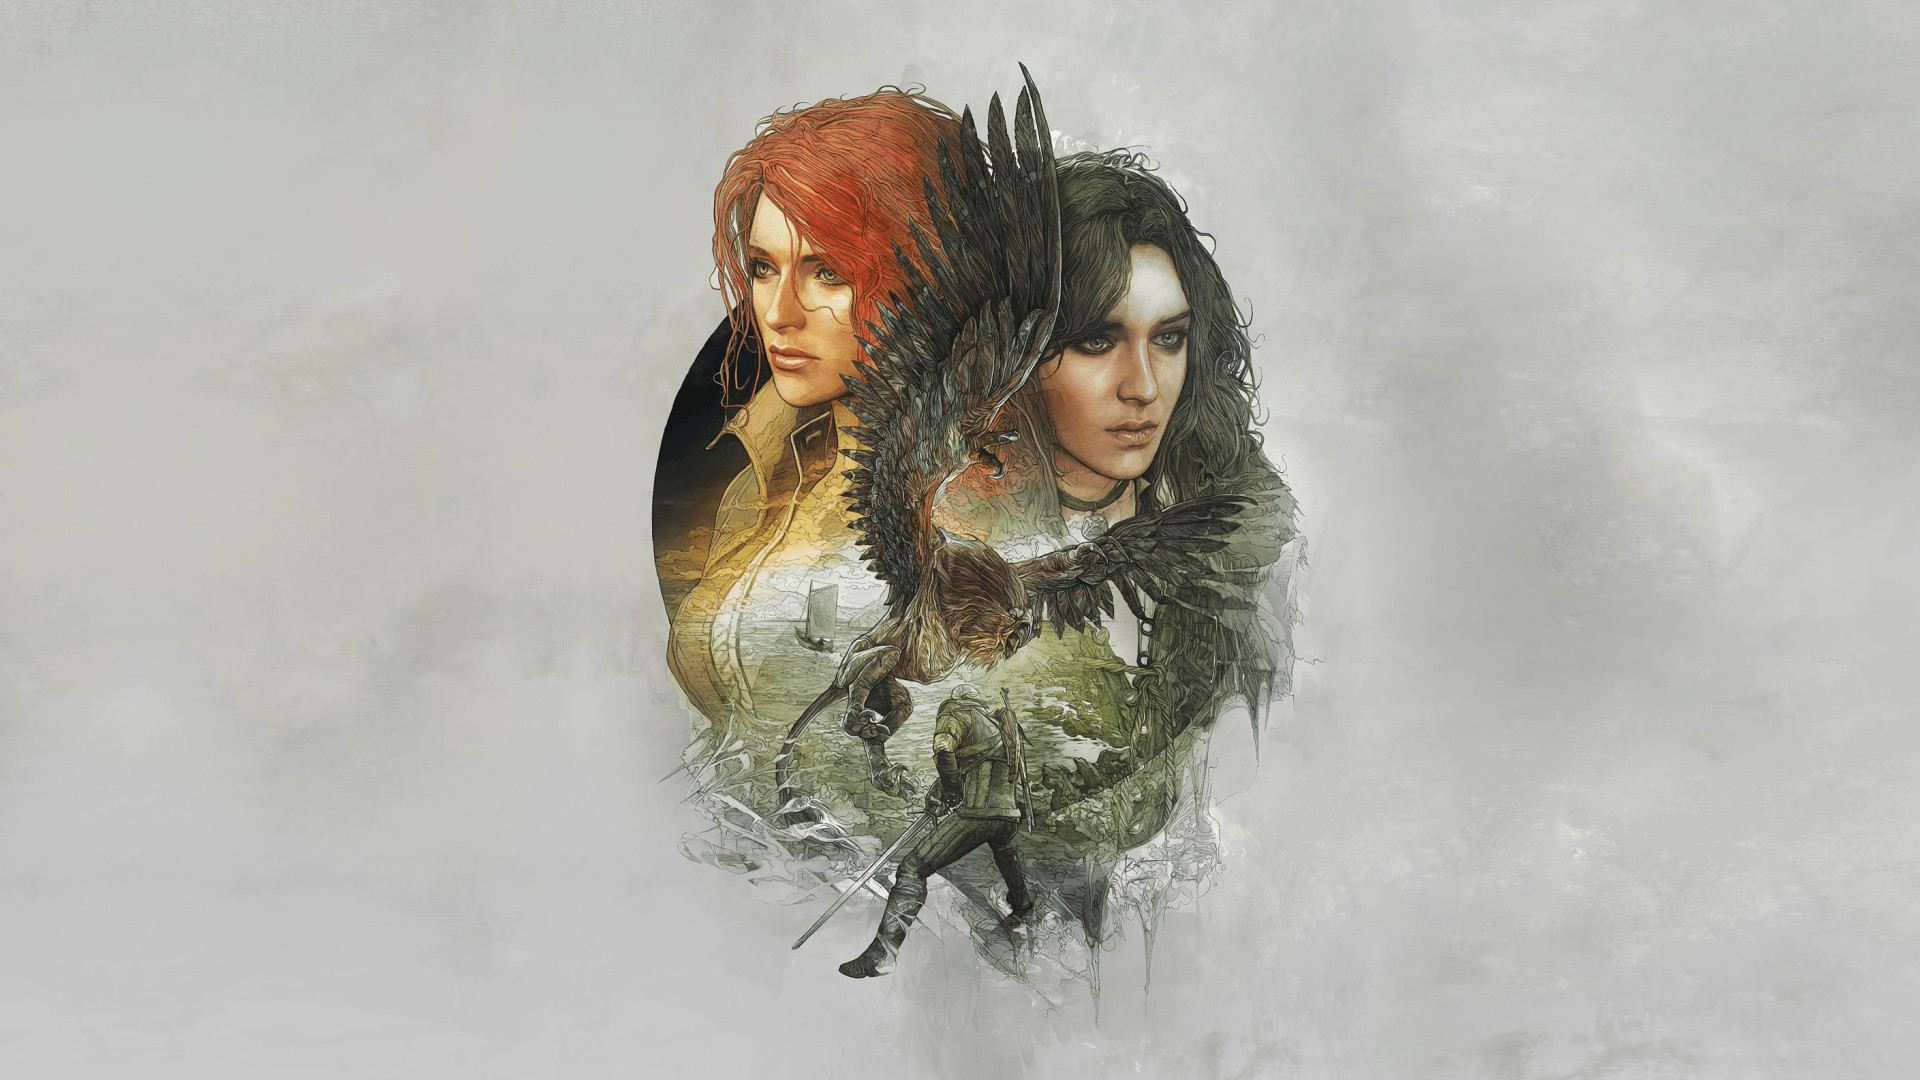 Res: 1920x1080, Yennefer Triss Merigold The Witcher 3: Wild Hunt The Witcher 1080p HD  Wallpaper Background